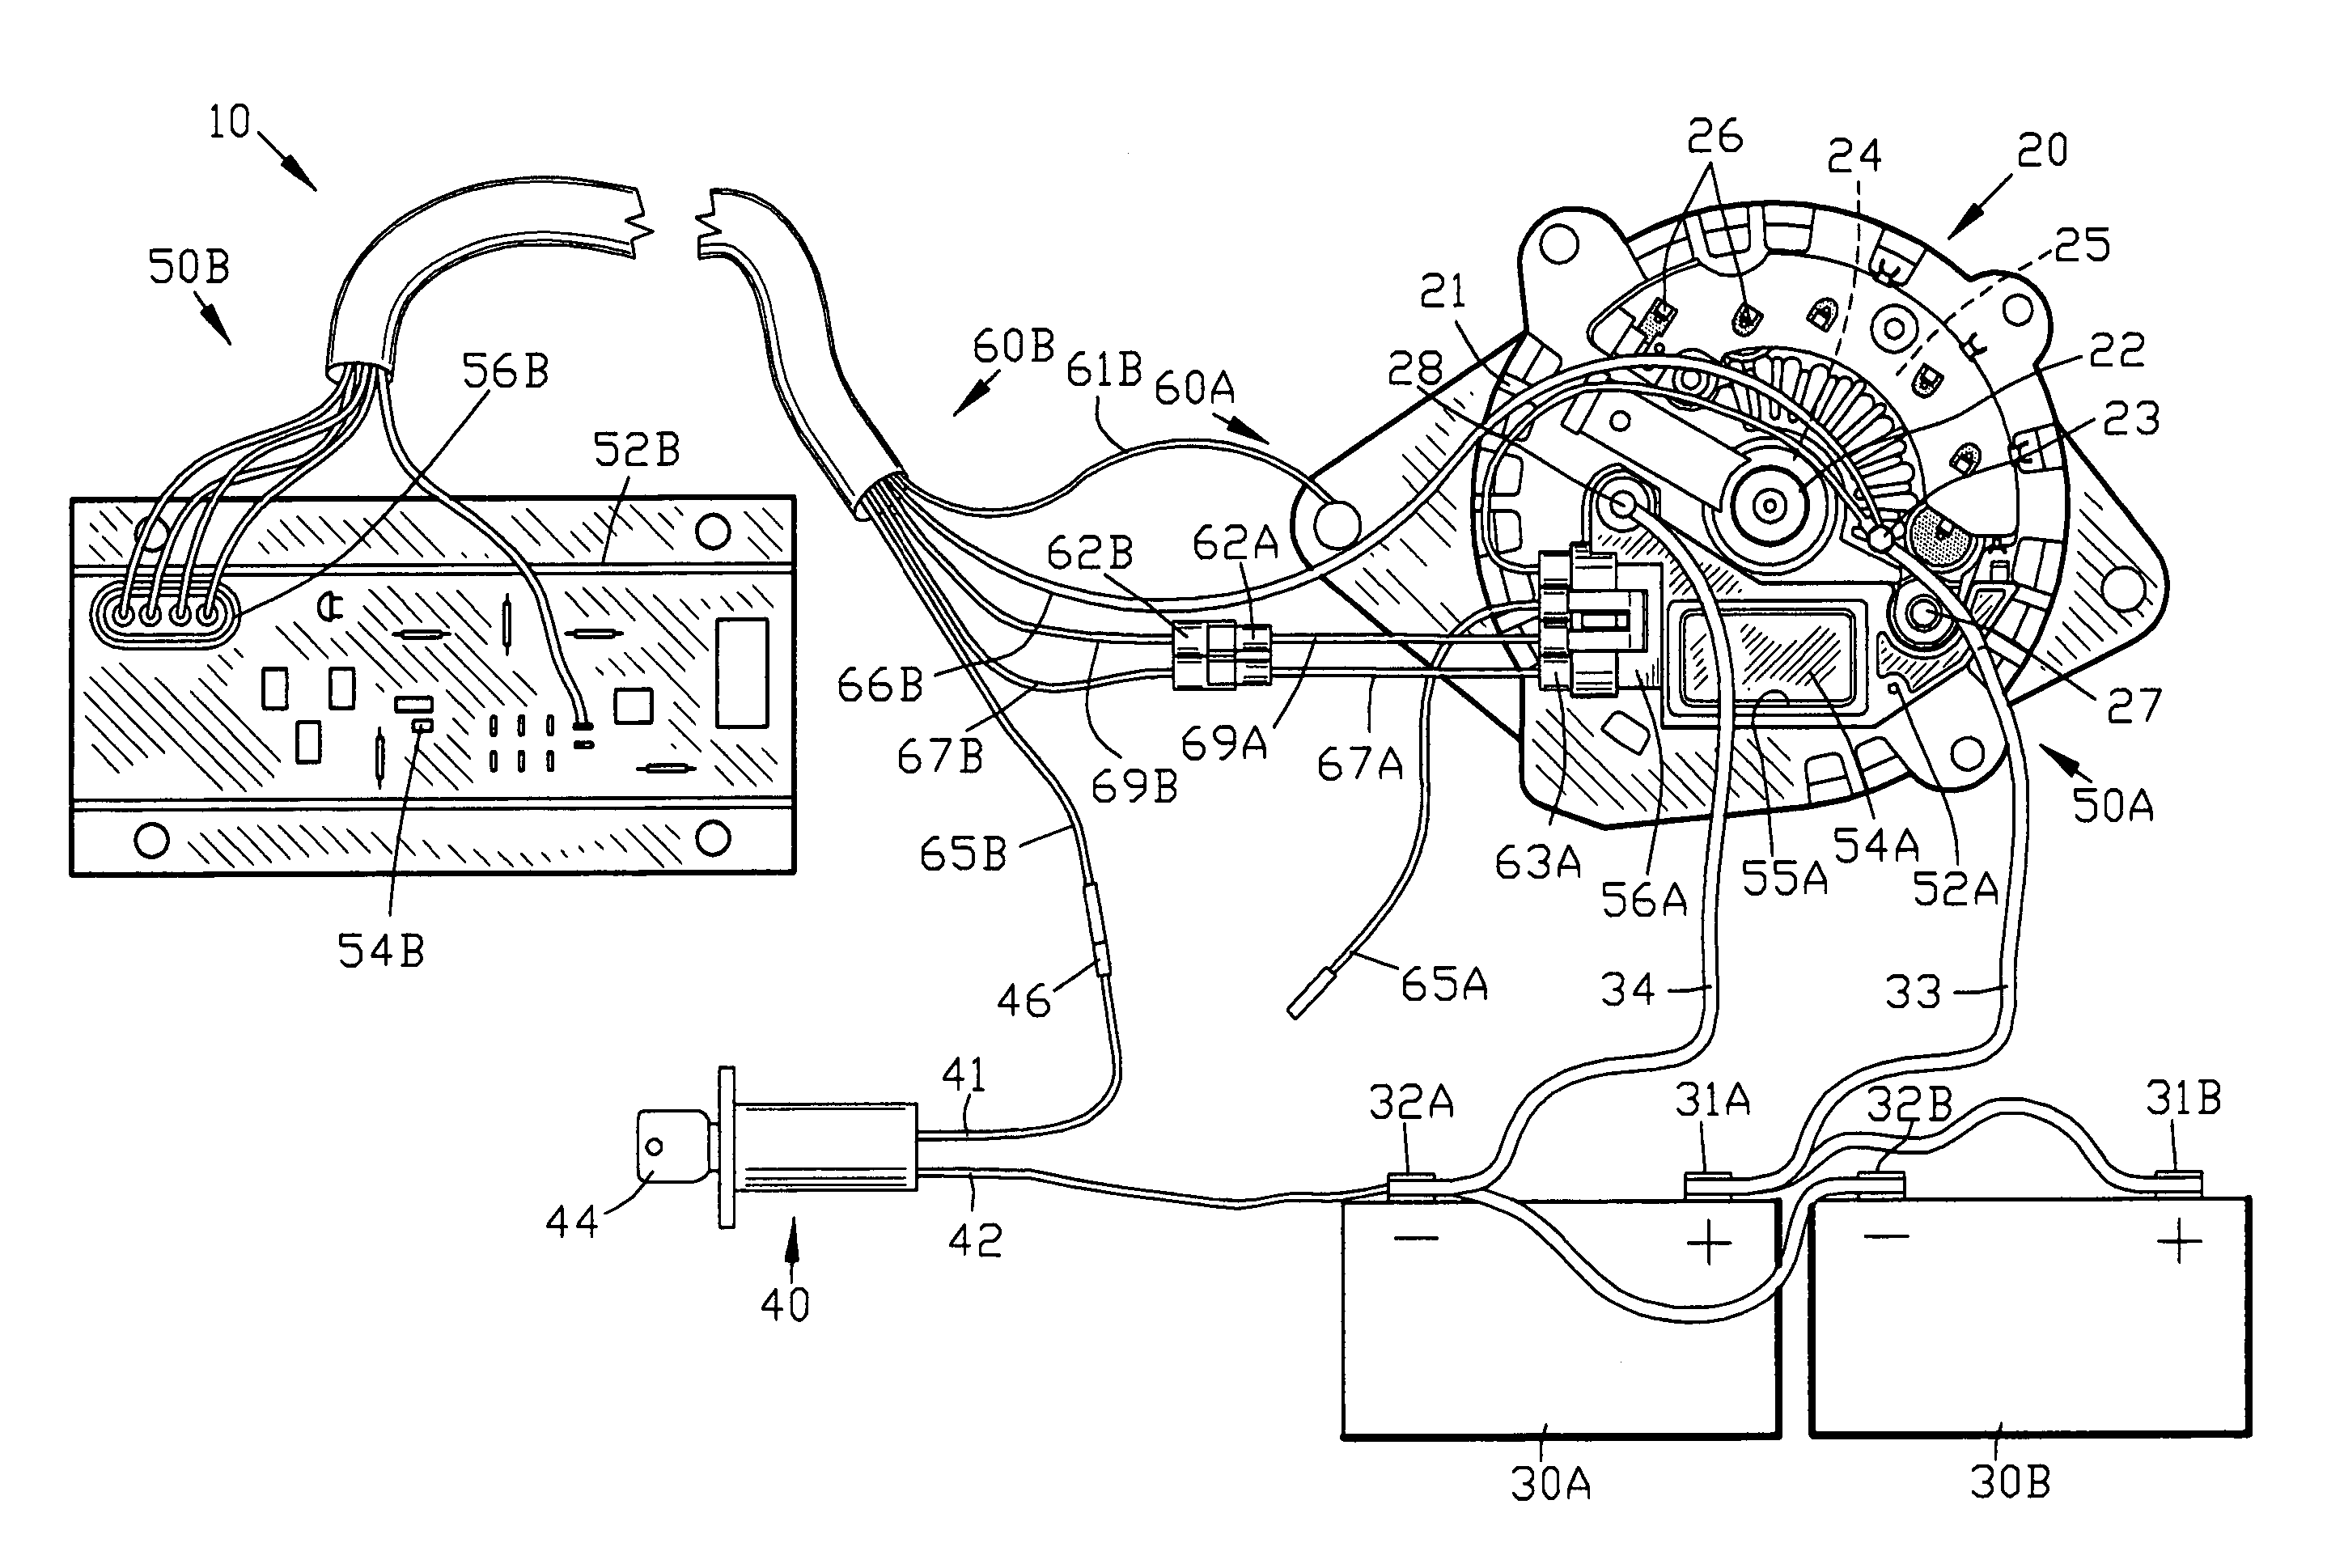 Valeo Alternator Regulator Wiring Diagram 41 Images Toyota Voltage Us07245111 20070717 D00000 Patent Us7245111 System For Google Patents